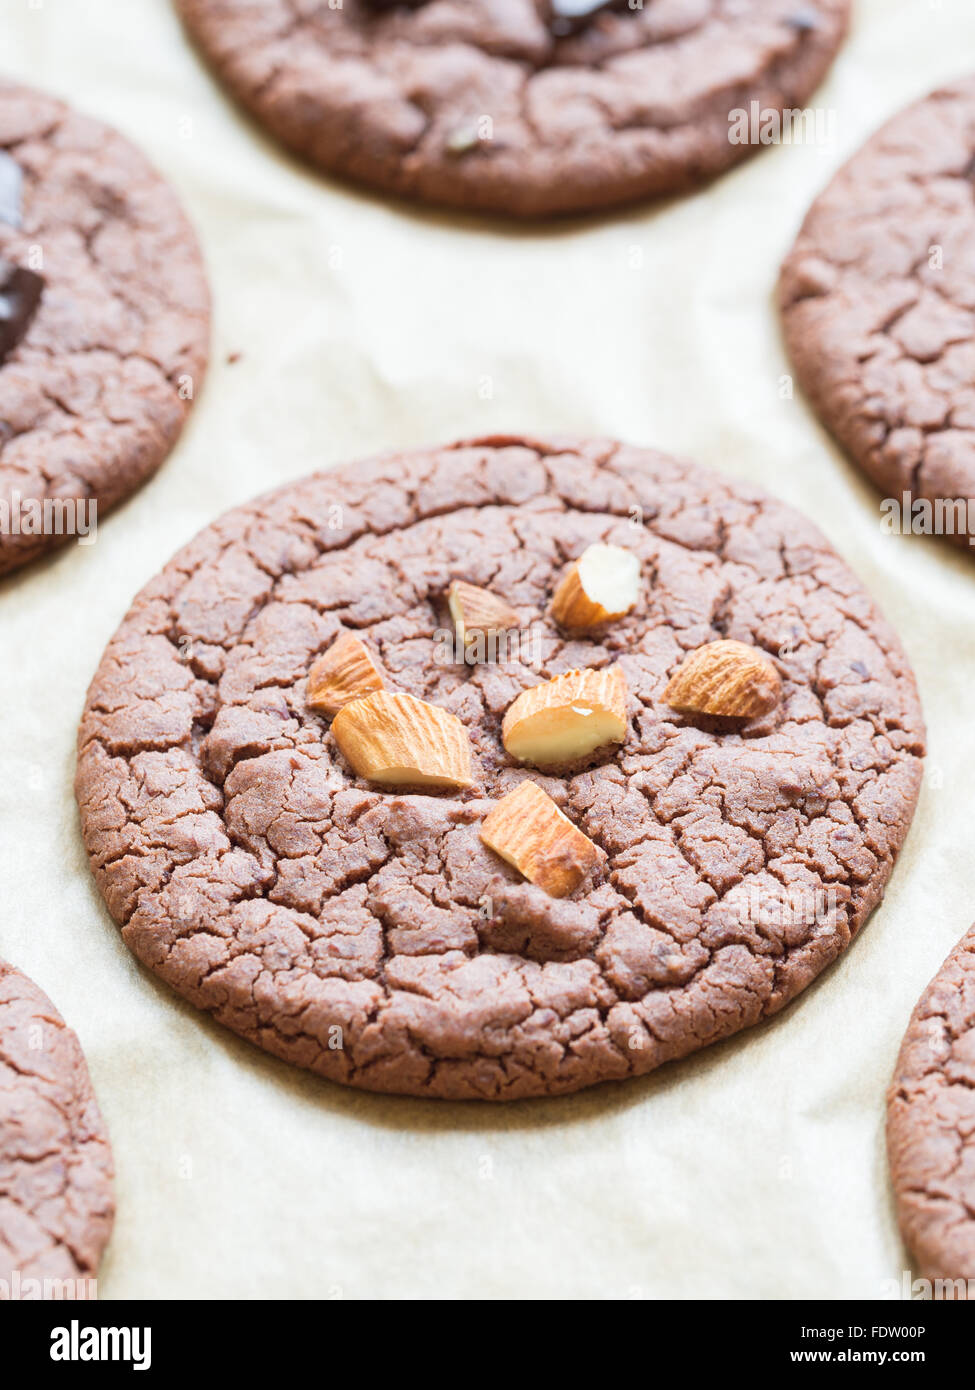 Vegan flowerless gluten free chocolate cookies with almonds. - Stock Image